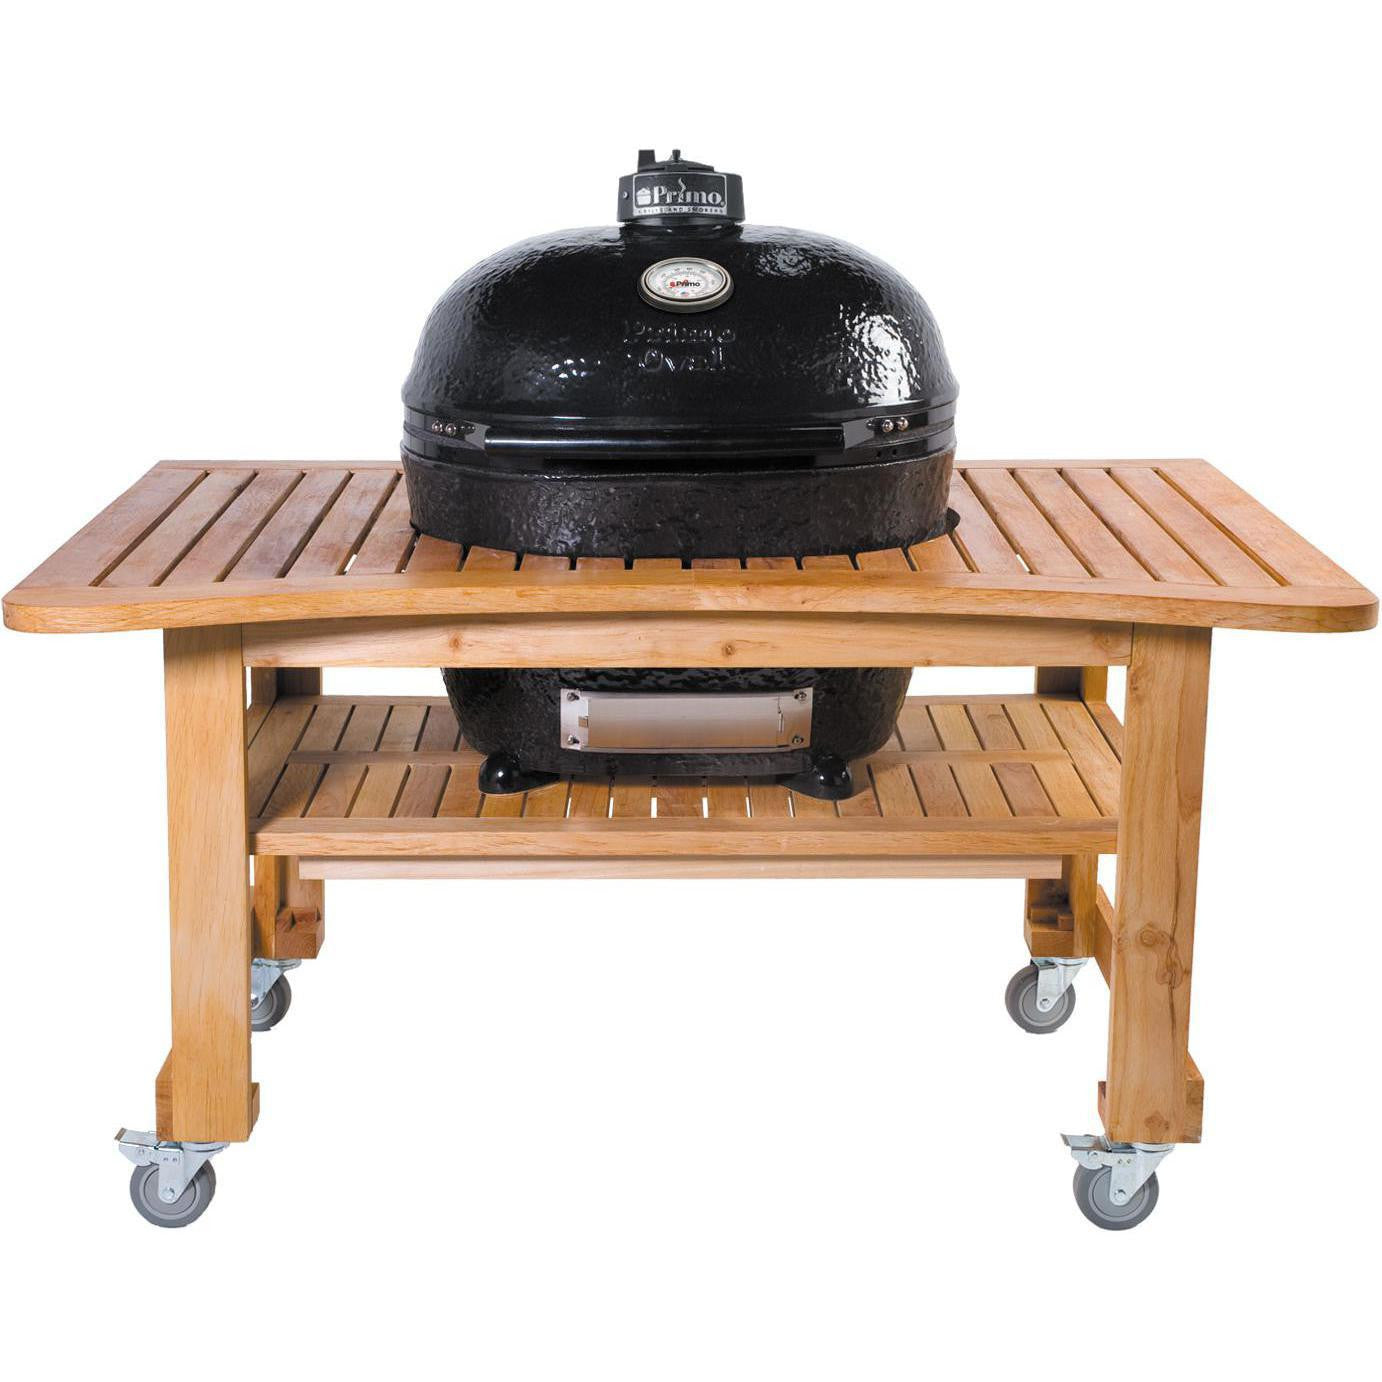 Primo Ceramic Charcoal Kamado Grill   Oval LG 300 W/ Teak Table